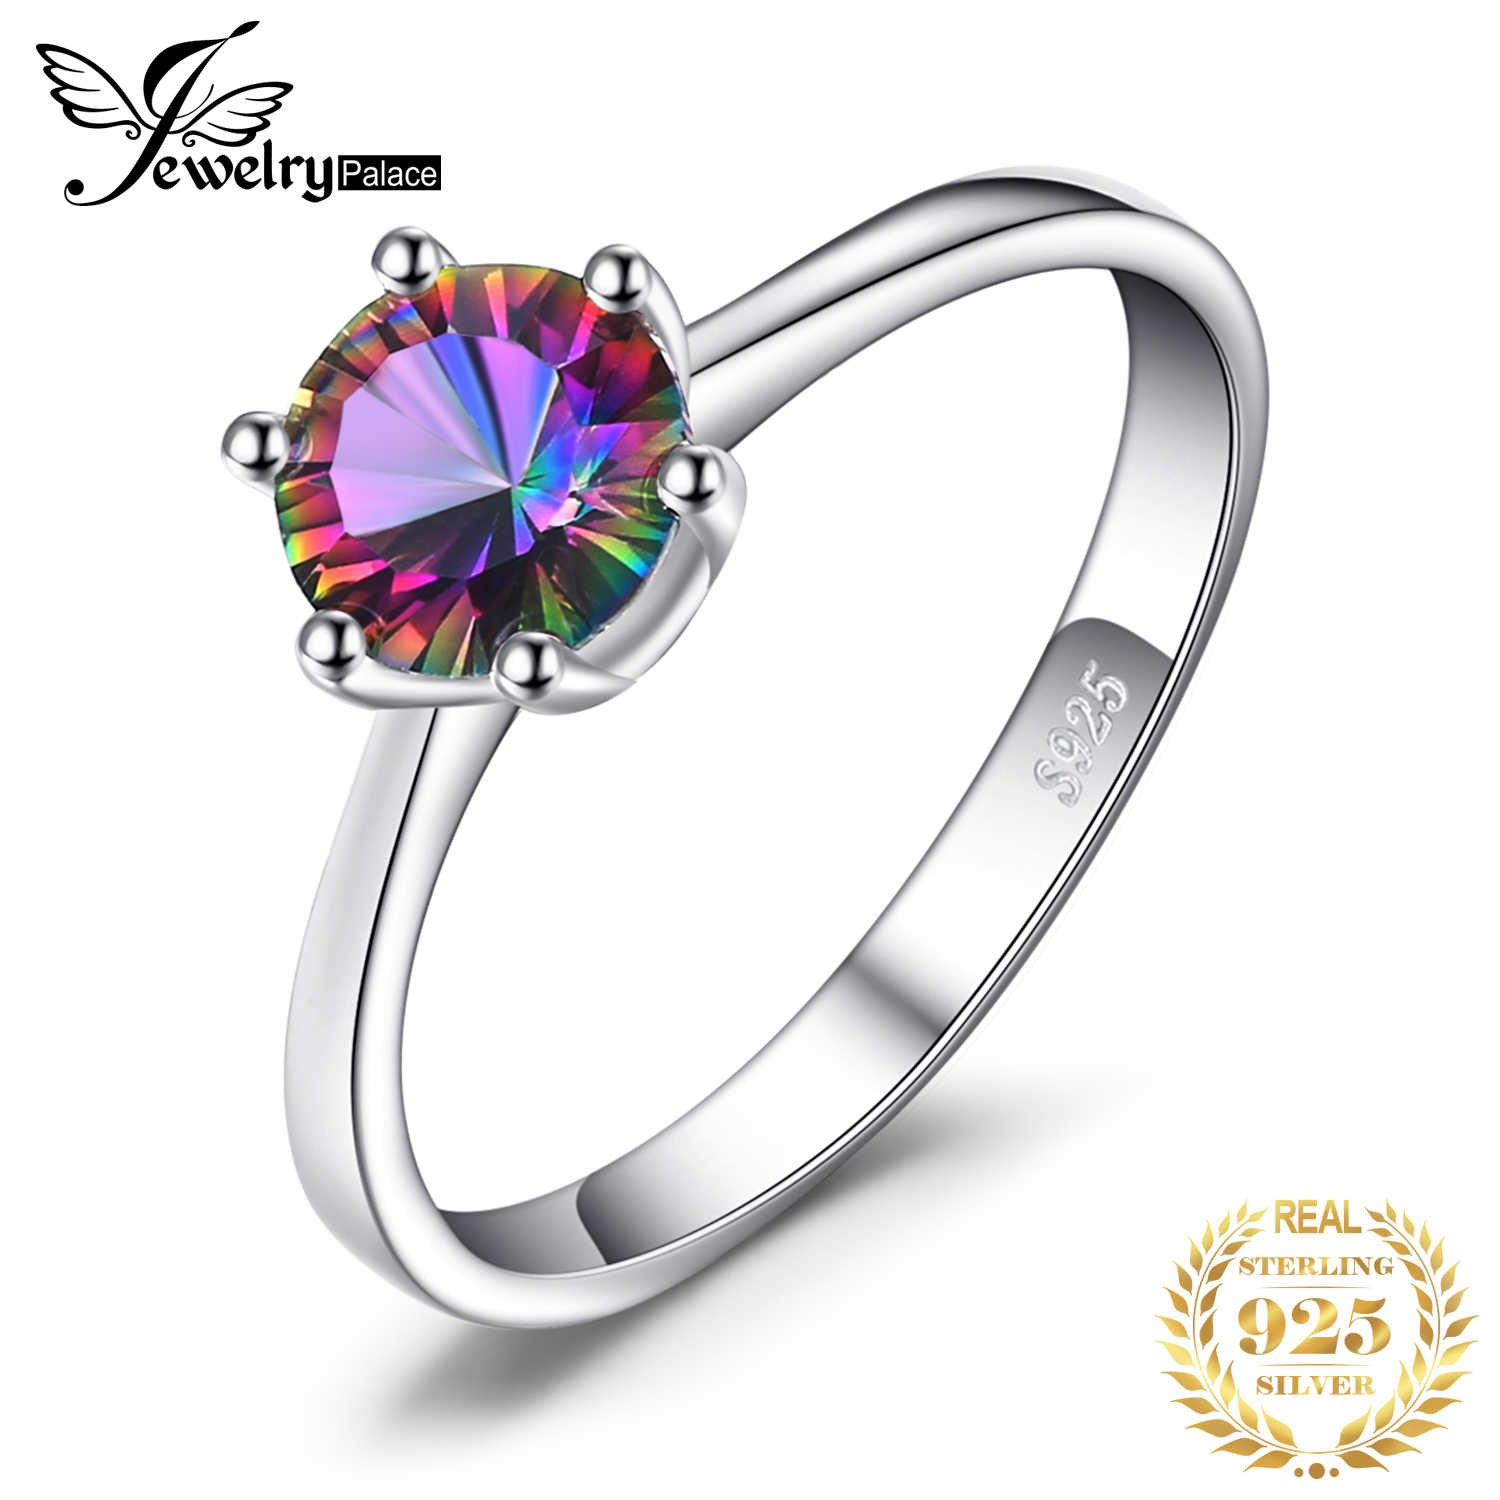 JewelryPalace sterling silver ring Womens 1ct Mystic Fire Rainbow Topaz Engagement Wedding  Unique Brand Girl Friends Gift